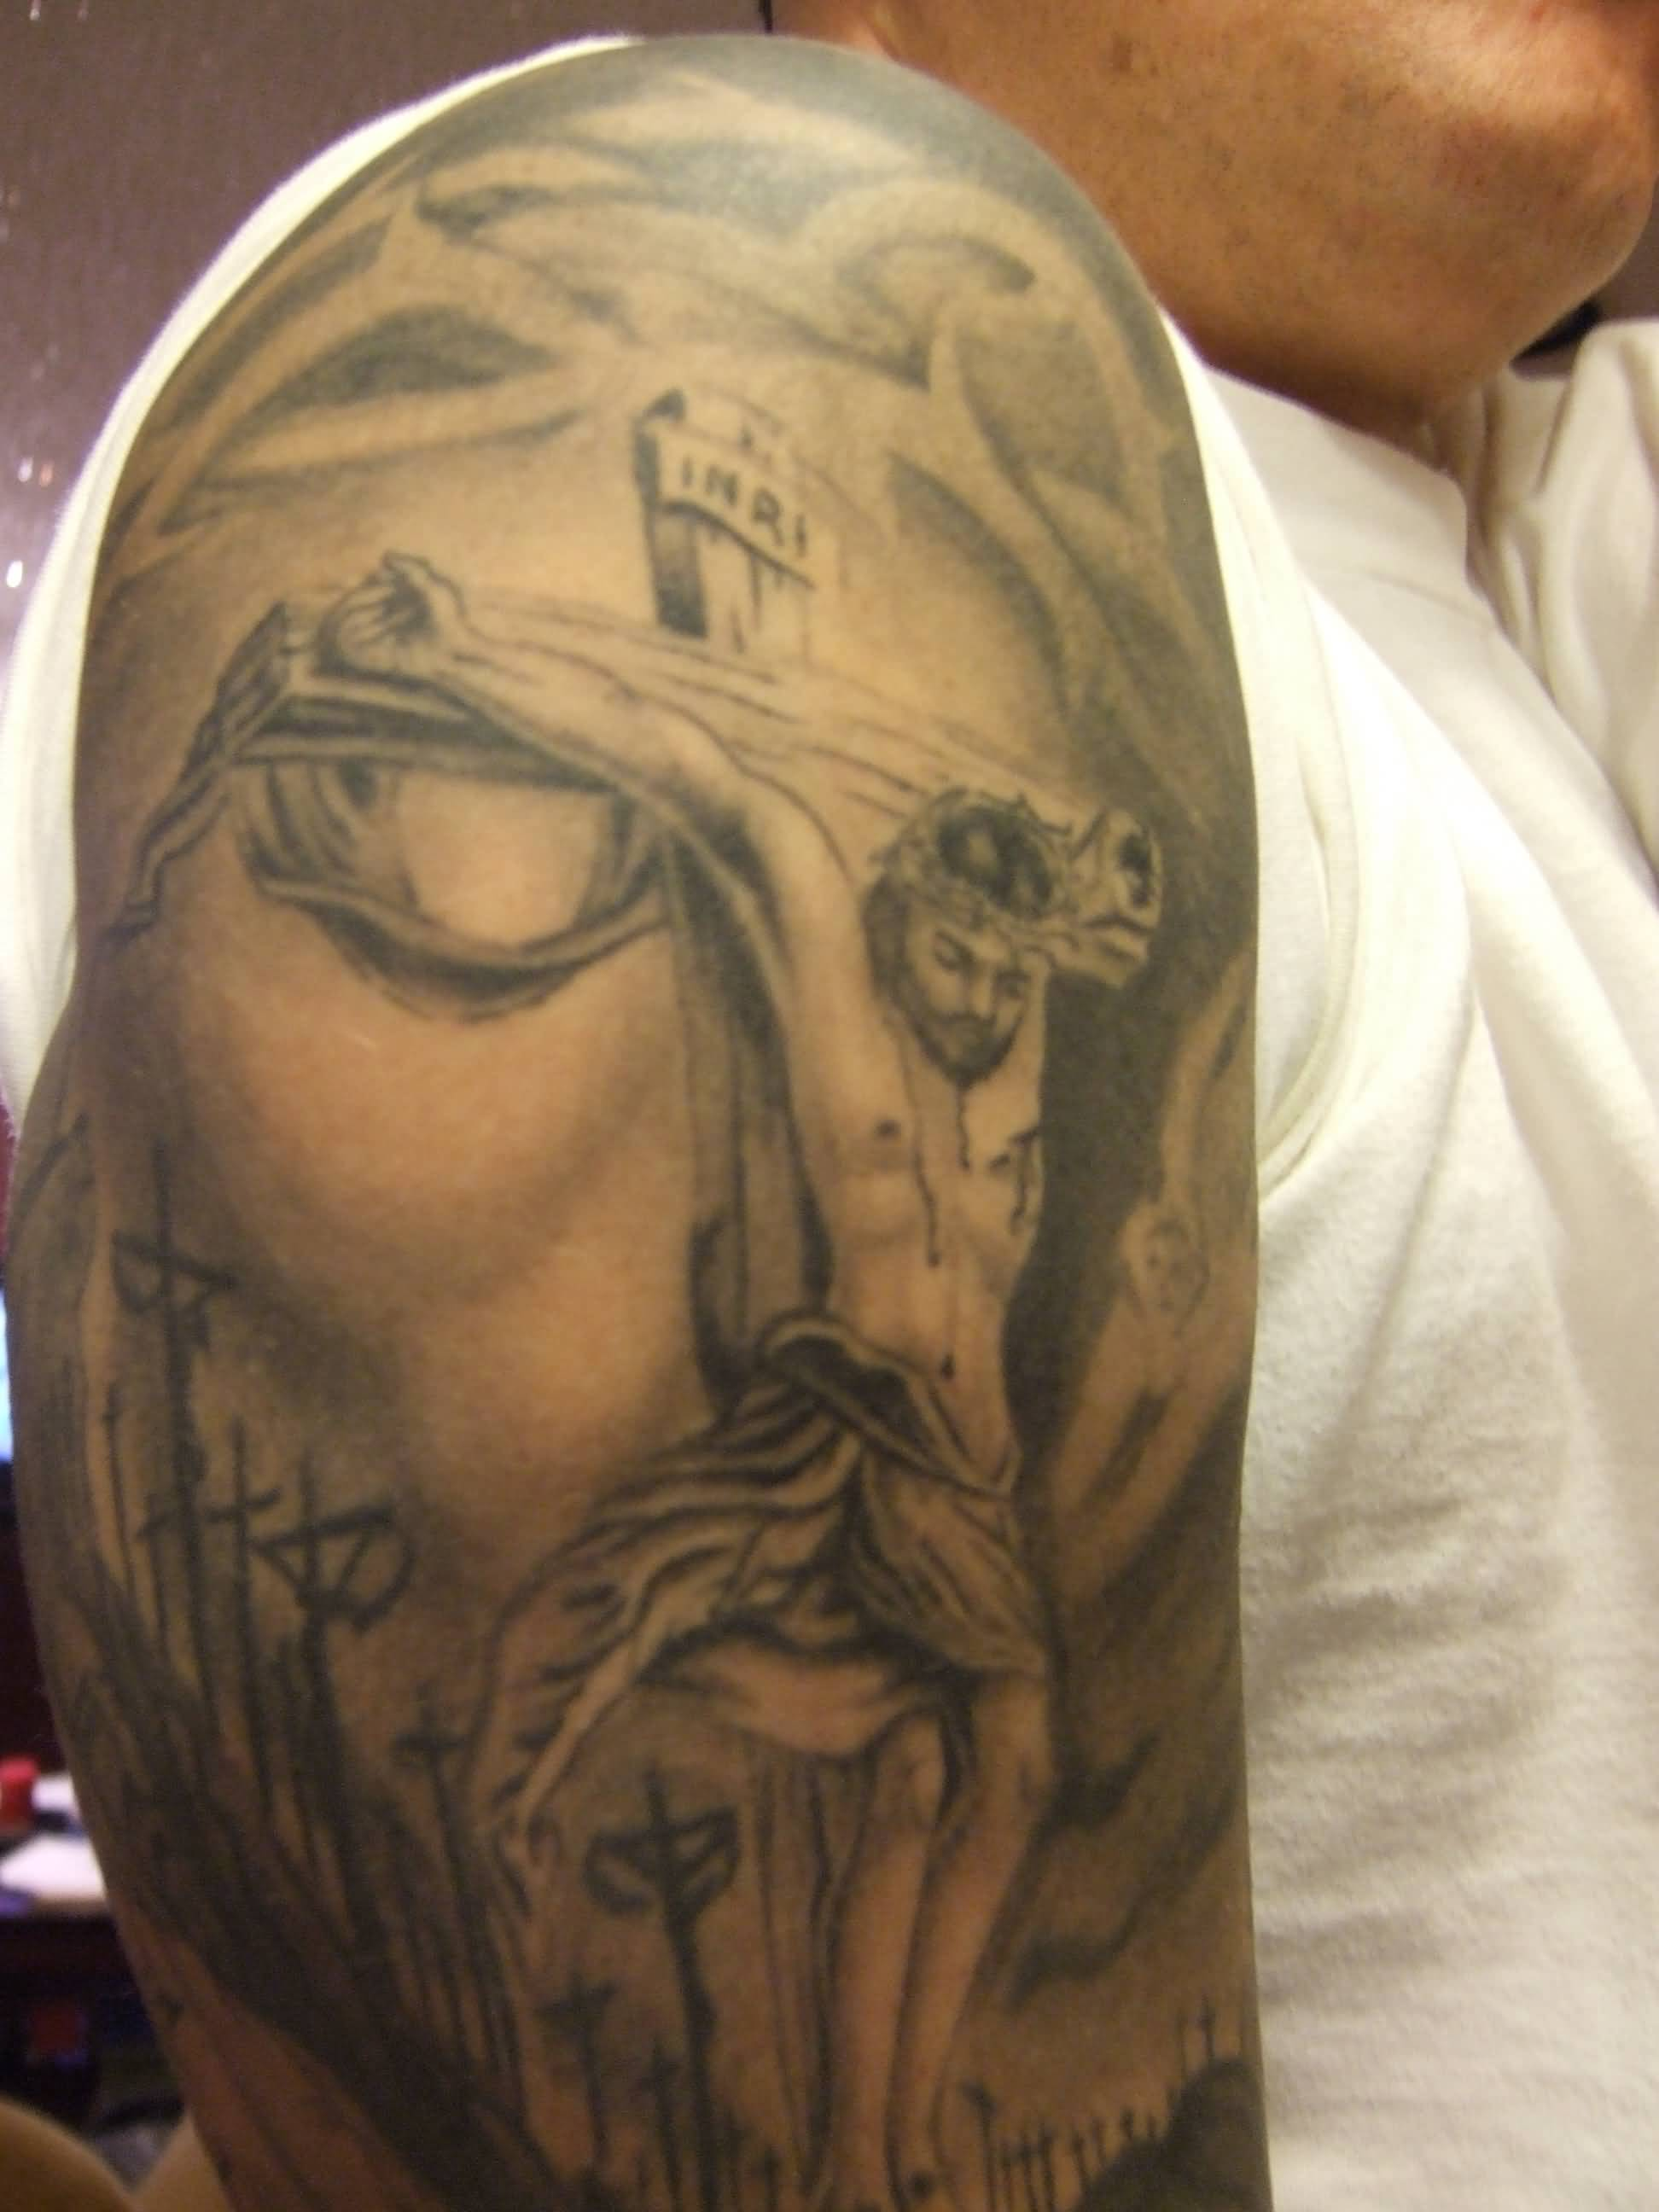 Mavelous Cross Jesus Tattoo Tattoo On Bicep